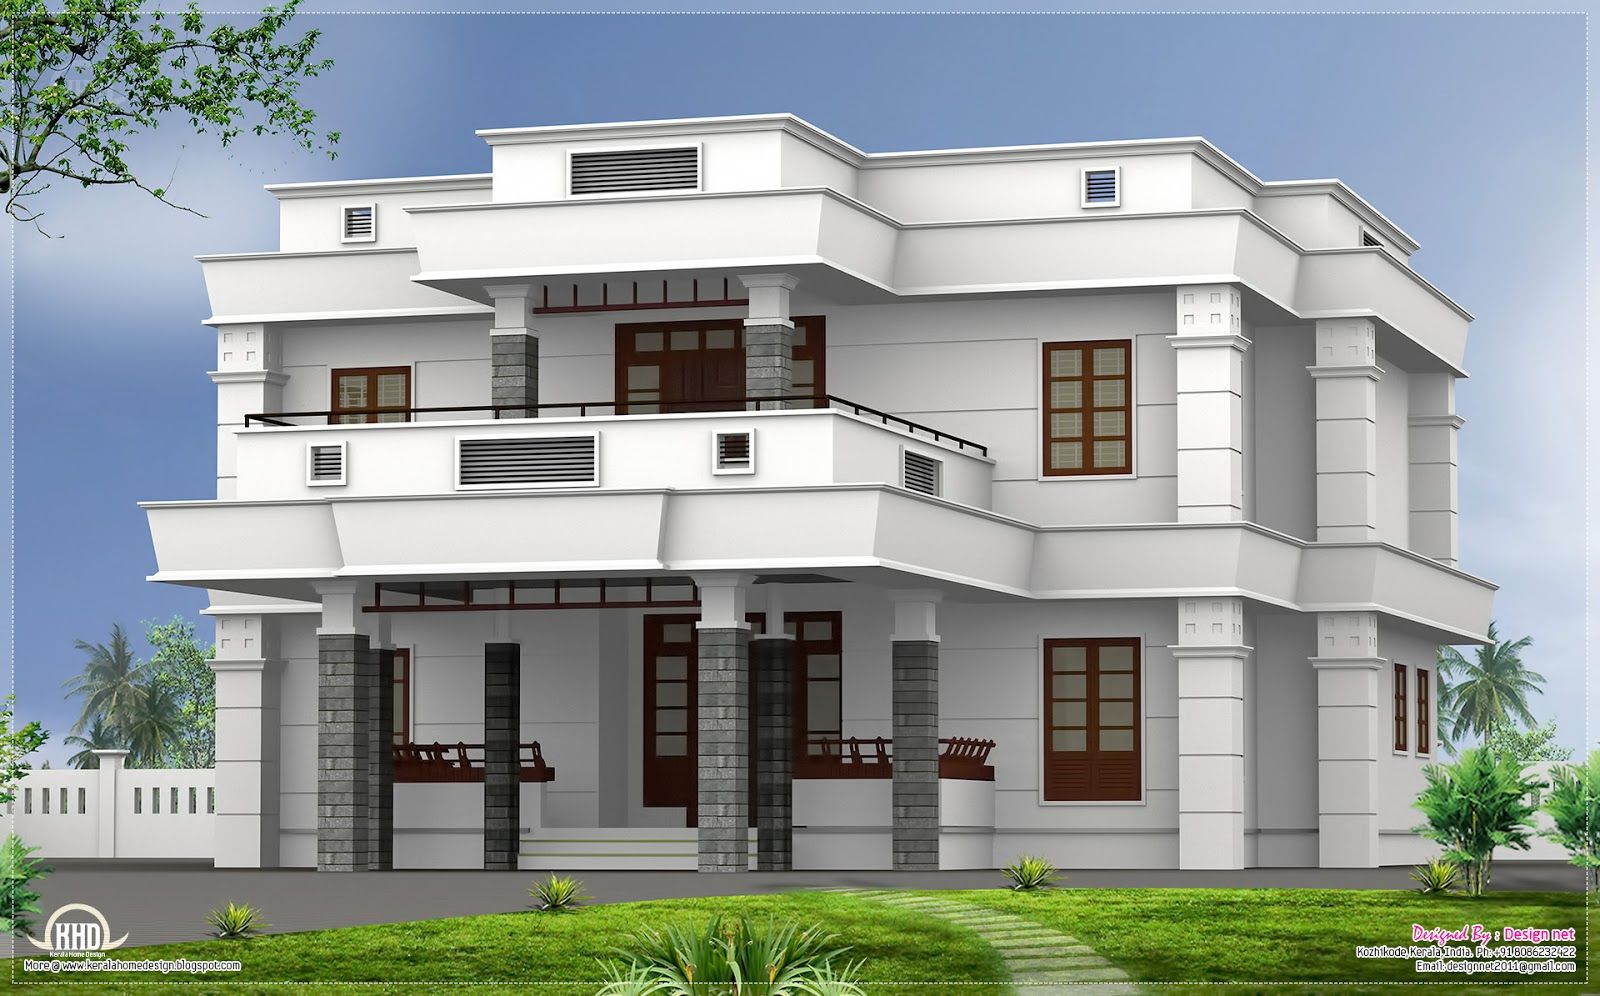 Flat roof homes designs bhk modern flat roof house for 2 bhk house plans south indian style